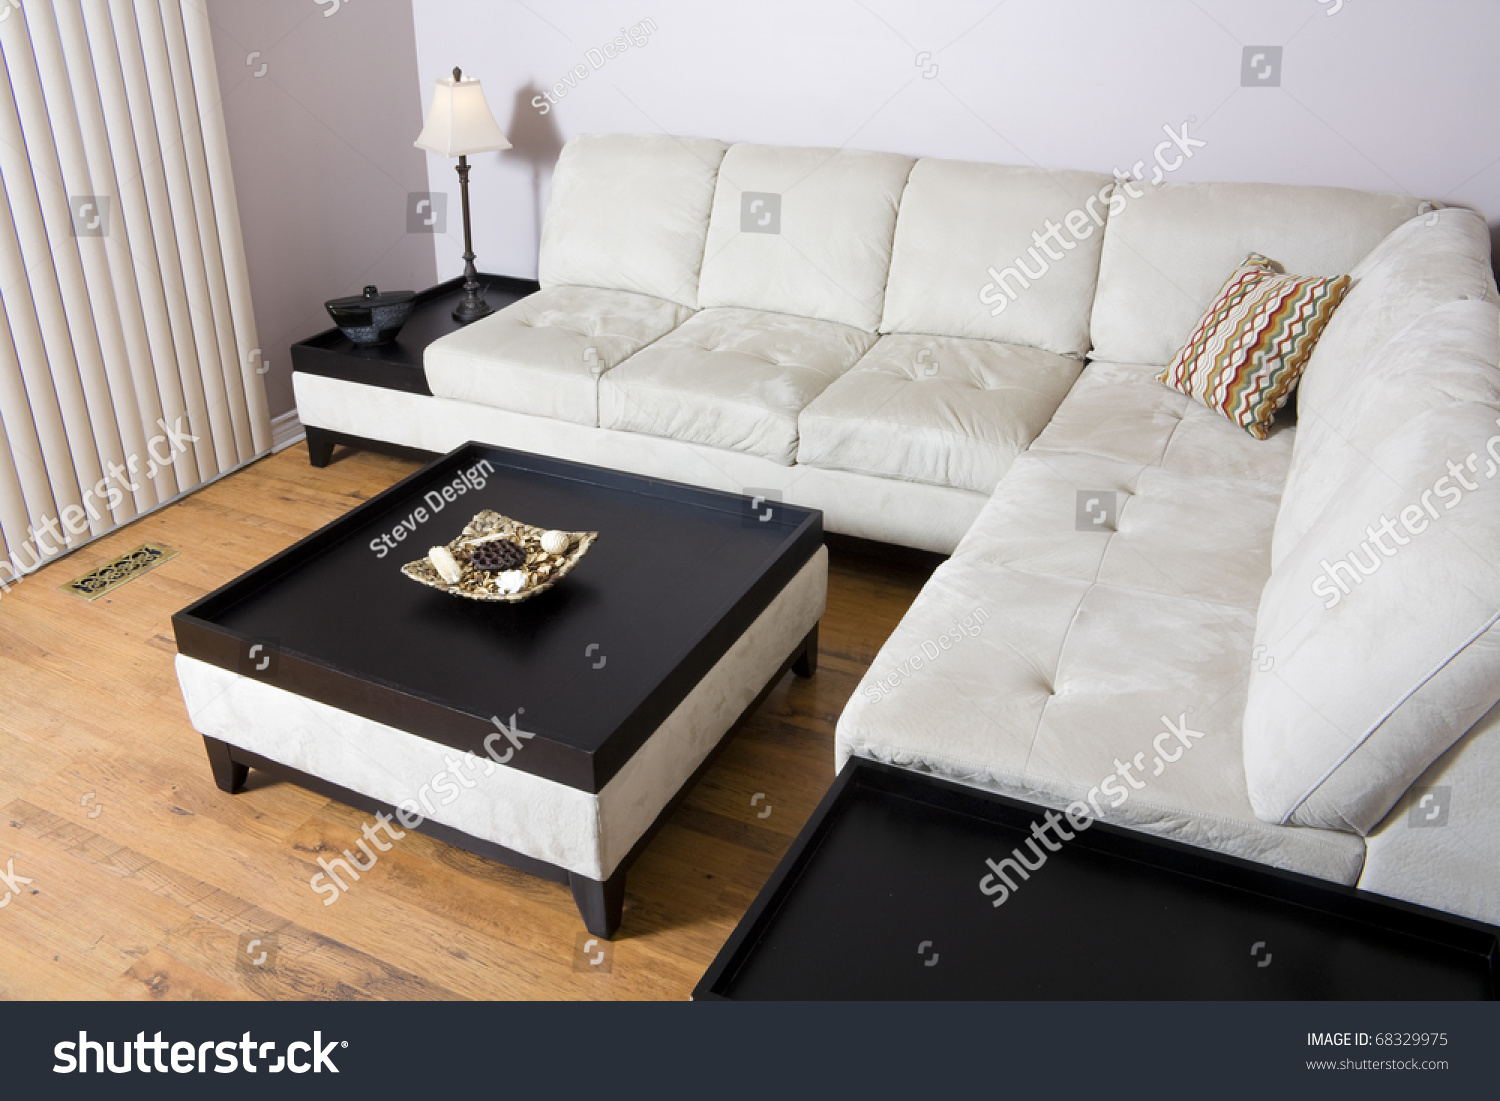 Living room setting sectional couch coffee stock photo 68329975 living room setting with sectional couch and coffee table geotapseo Images